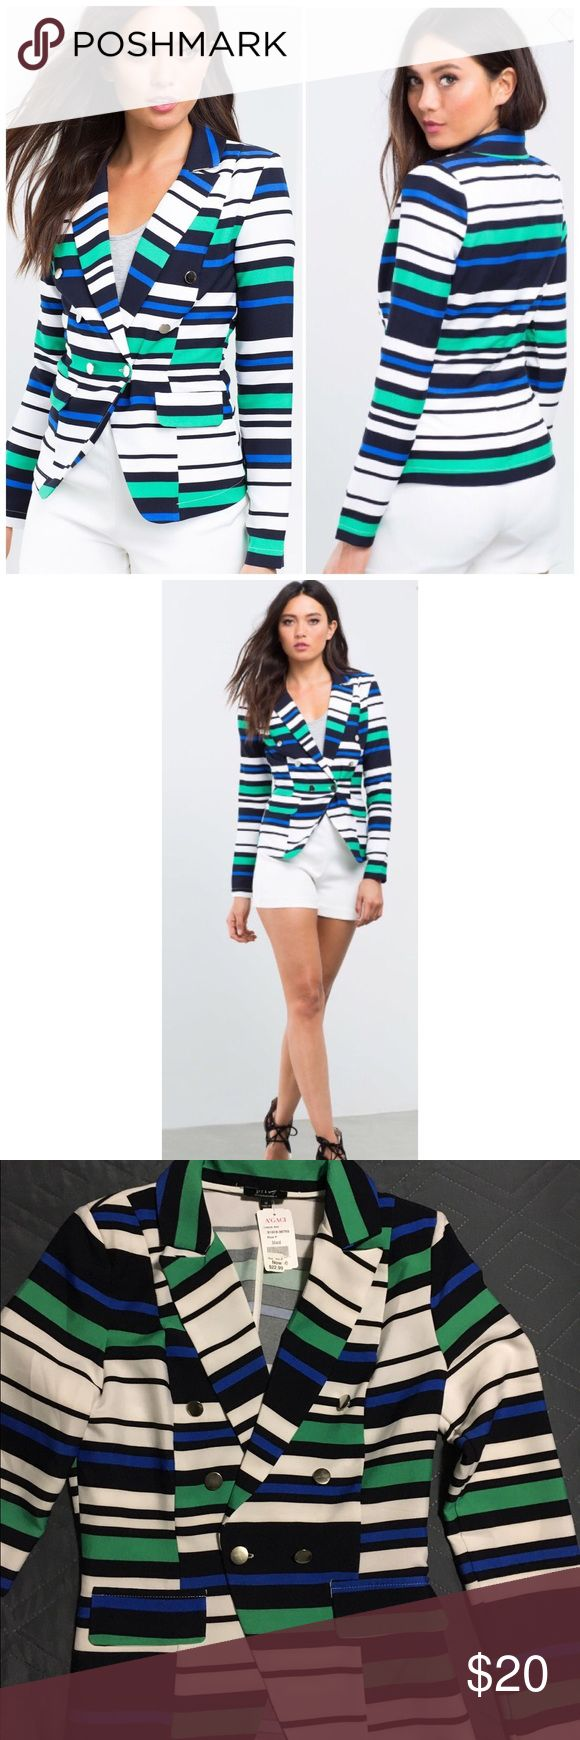 🎁Final Price🎁Striped Blazer PRICE ✂️IS FIRM...A standout blazer, featuring bold multi-colored stripes. Front button accents and single button closure. Notched collar. Long sleeves. Finished edges.  95% polyester, 5% spandex Brand is Boutique Five from A'gaci a'gaci Jackets & Coats Blazers